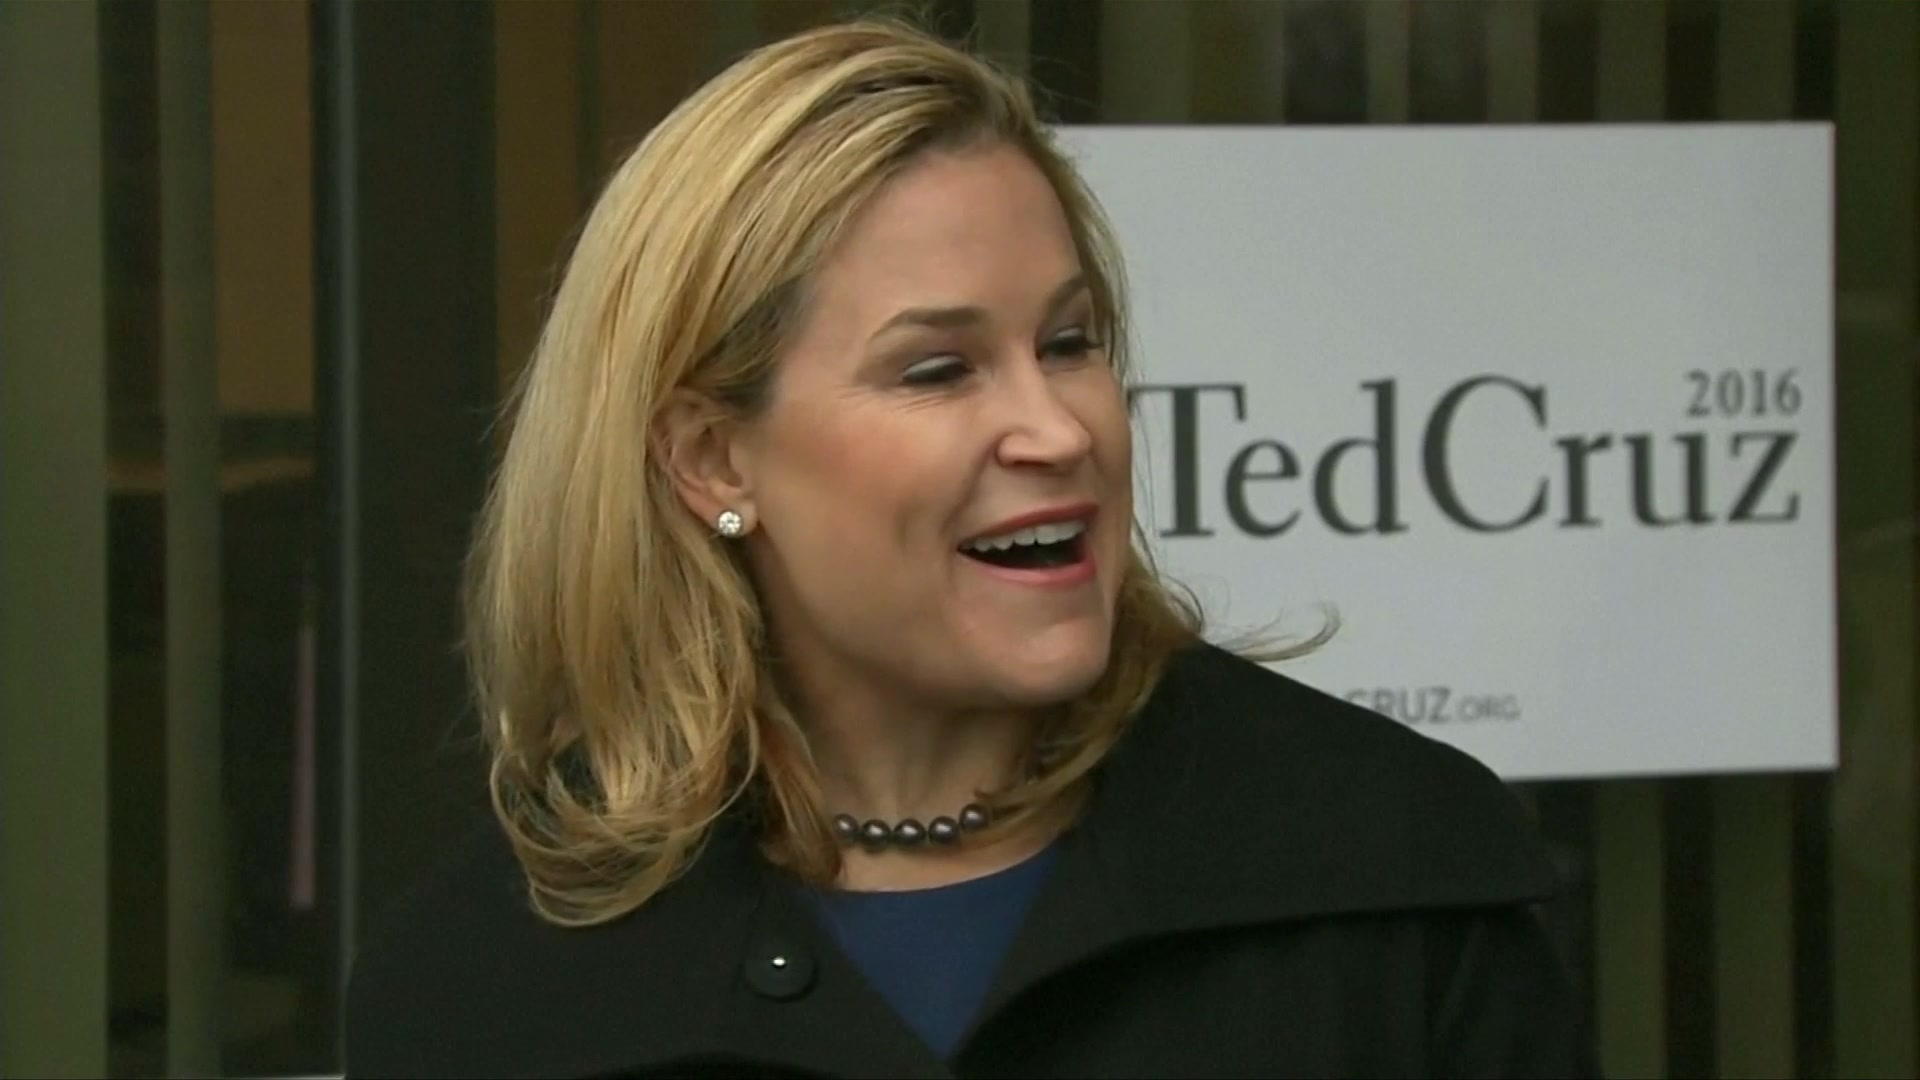 Cruz's Wife Denies Nude Anti-Trump Ad